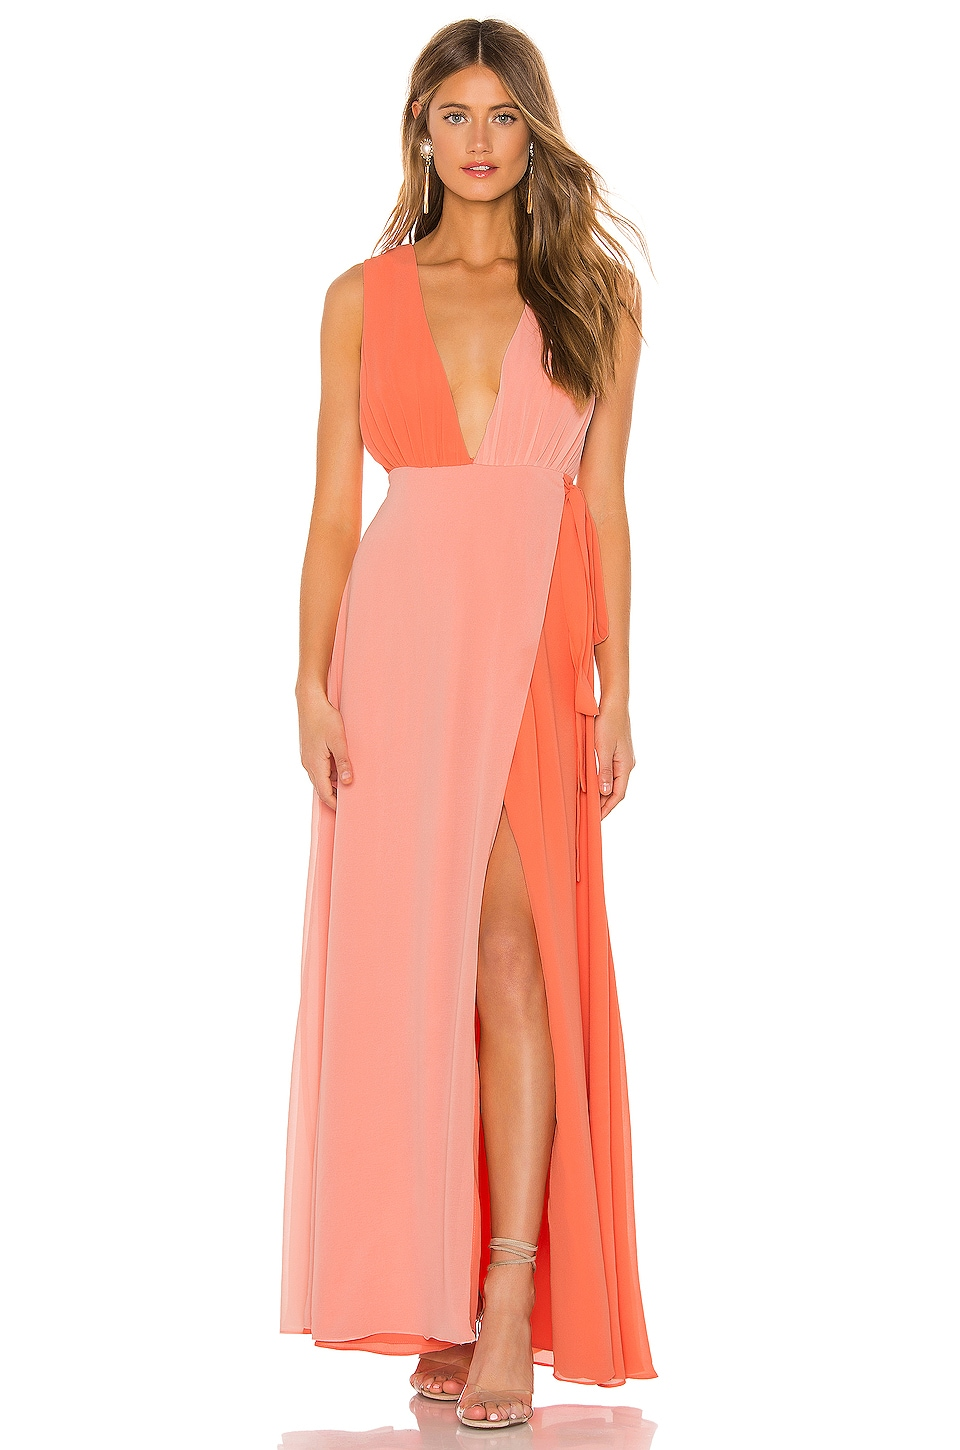 MAJORELLE Noah Gown in Orange & Sherbet